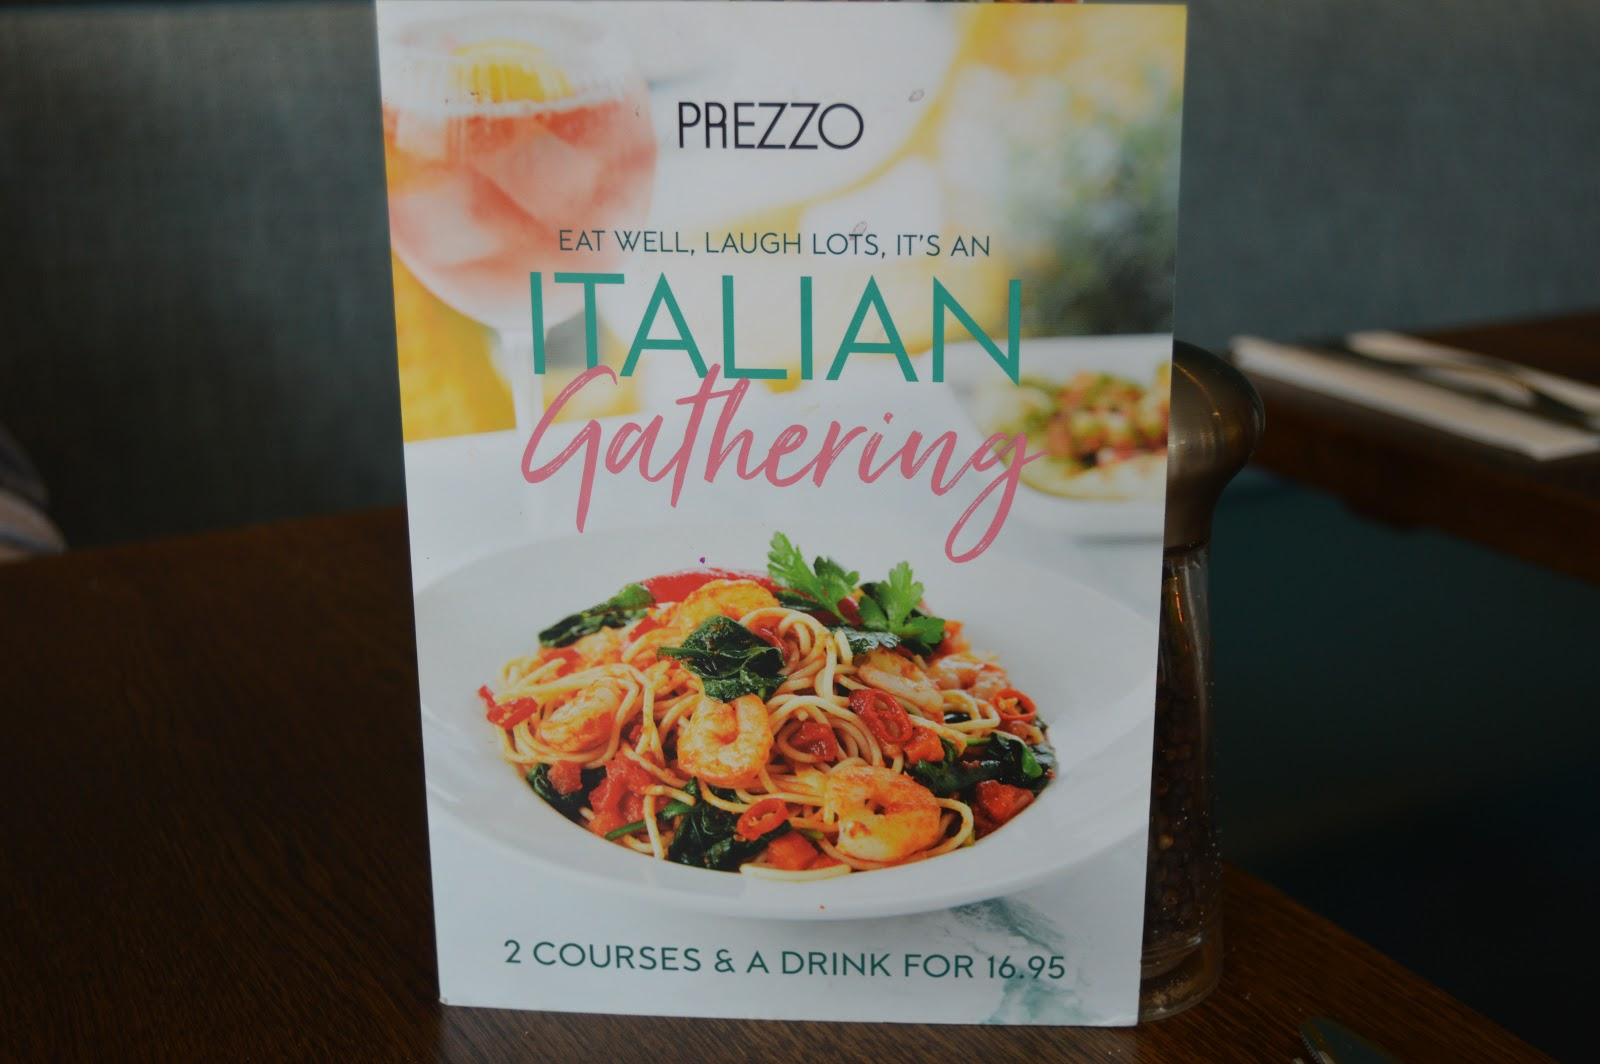 Italian Gathering Menu At Prezzo